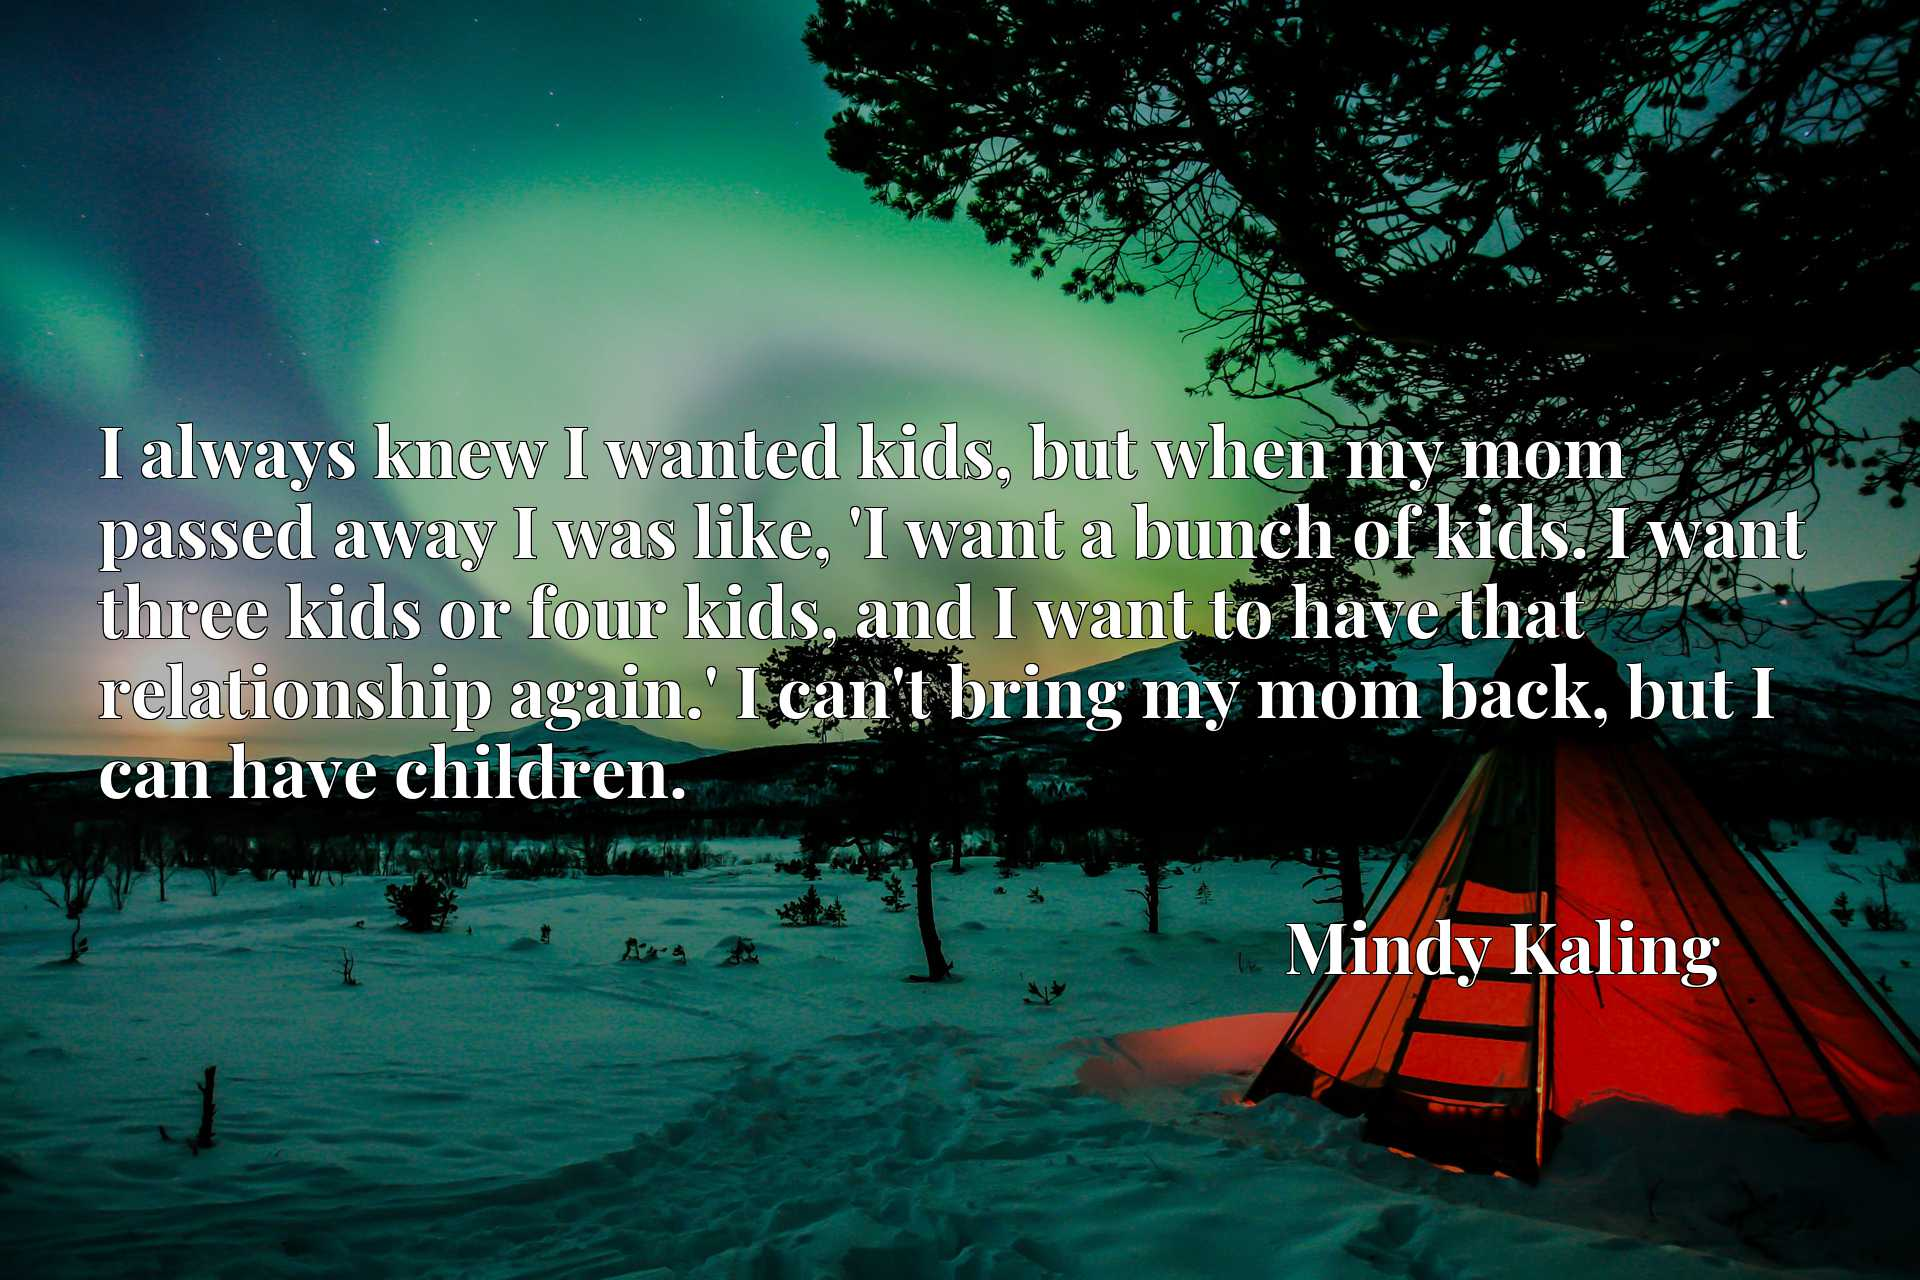 I always knew I wanted kids, but when my mom passed away I was like, 'I want a bunch of kids. I want three kids or four kids, and I want to have that relationship again.' I can't bring my mom back, but I can have children.